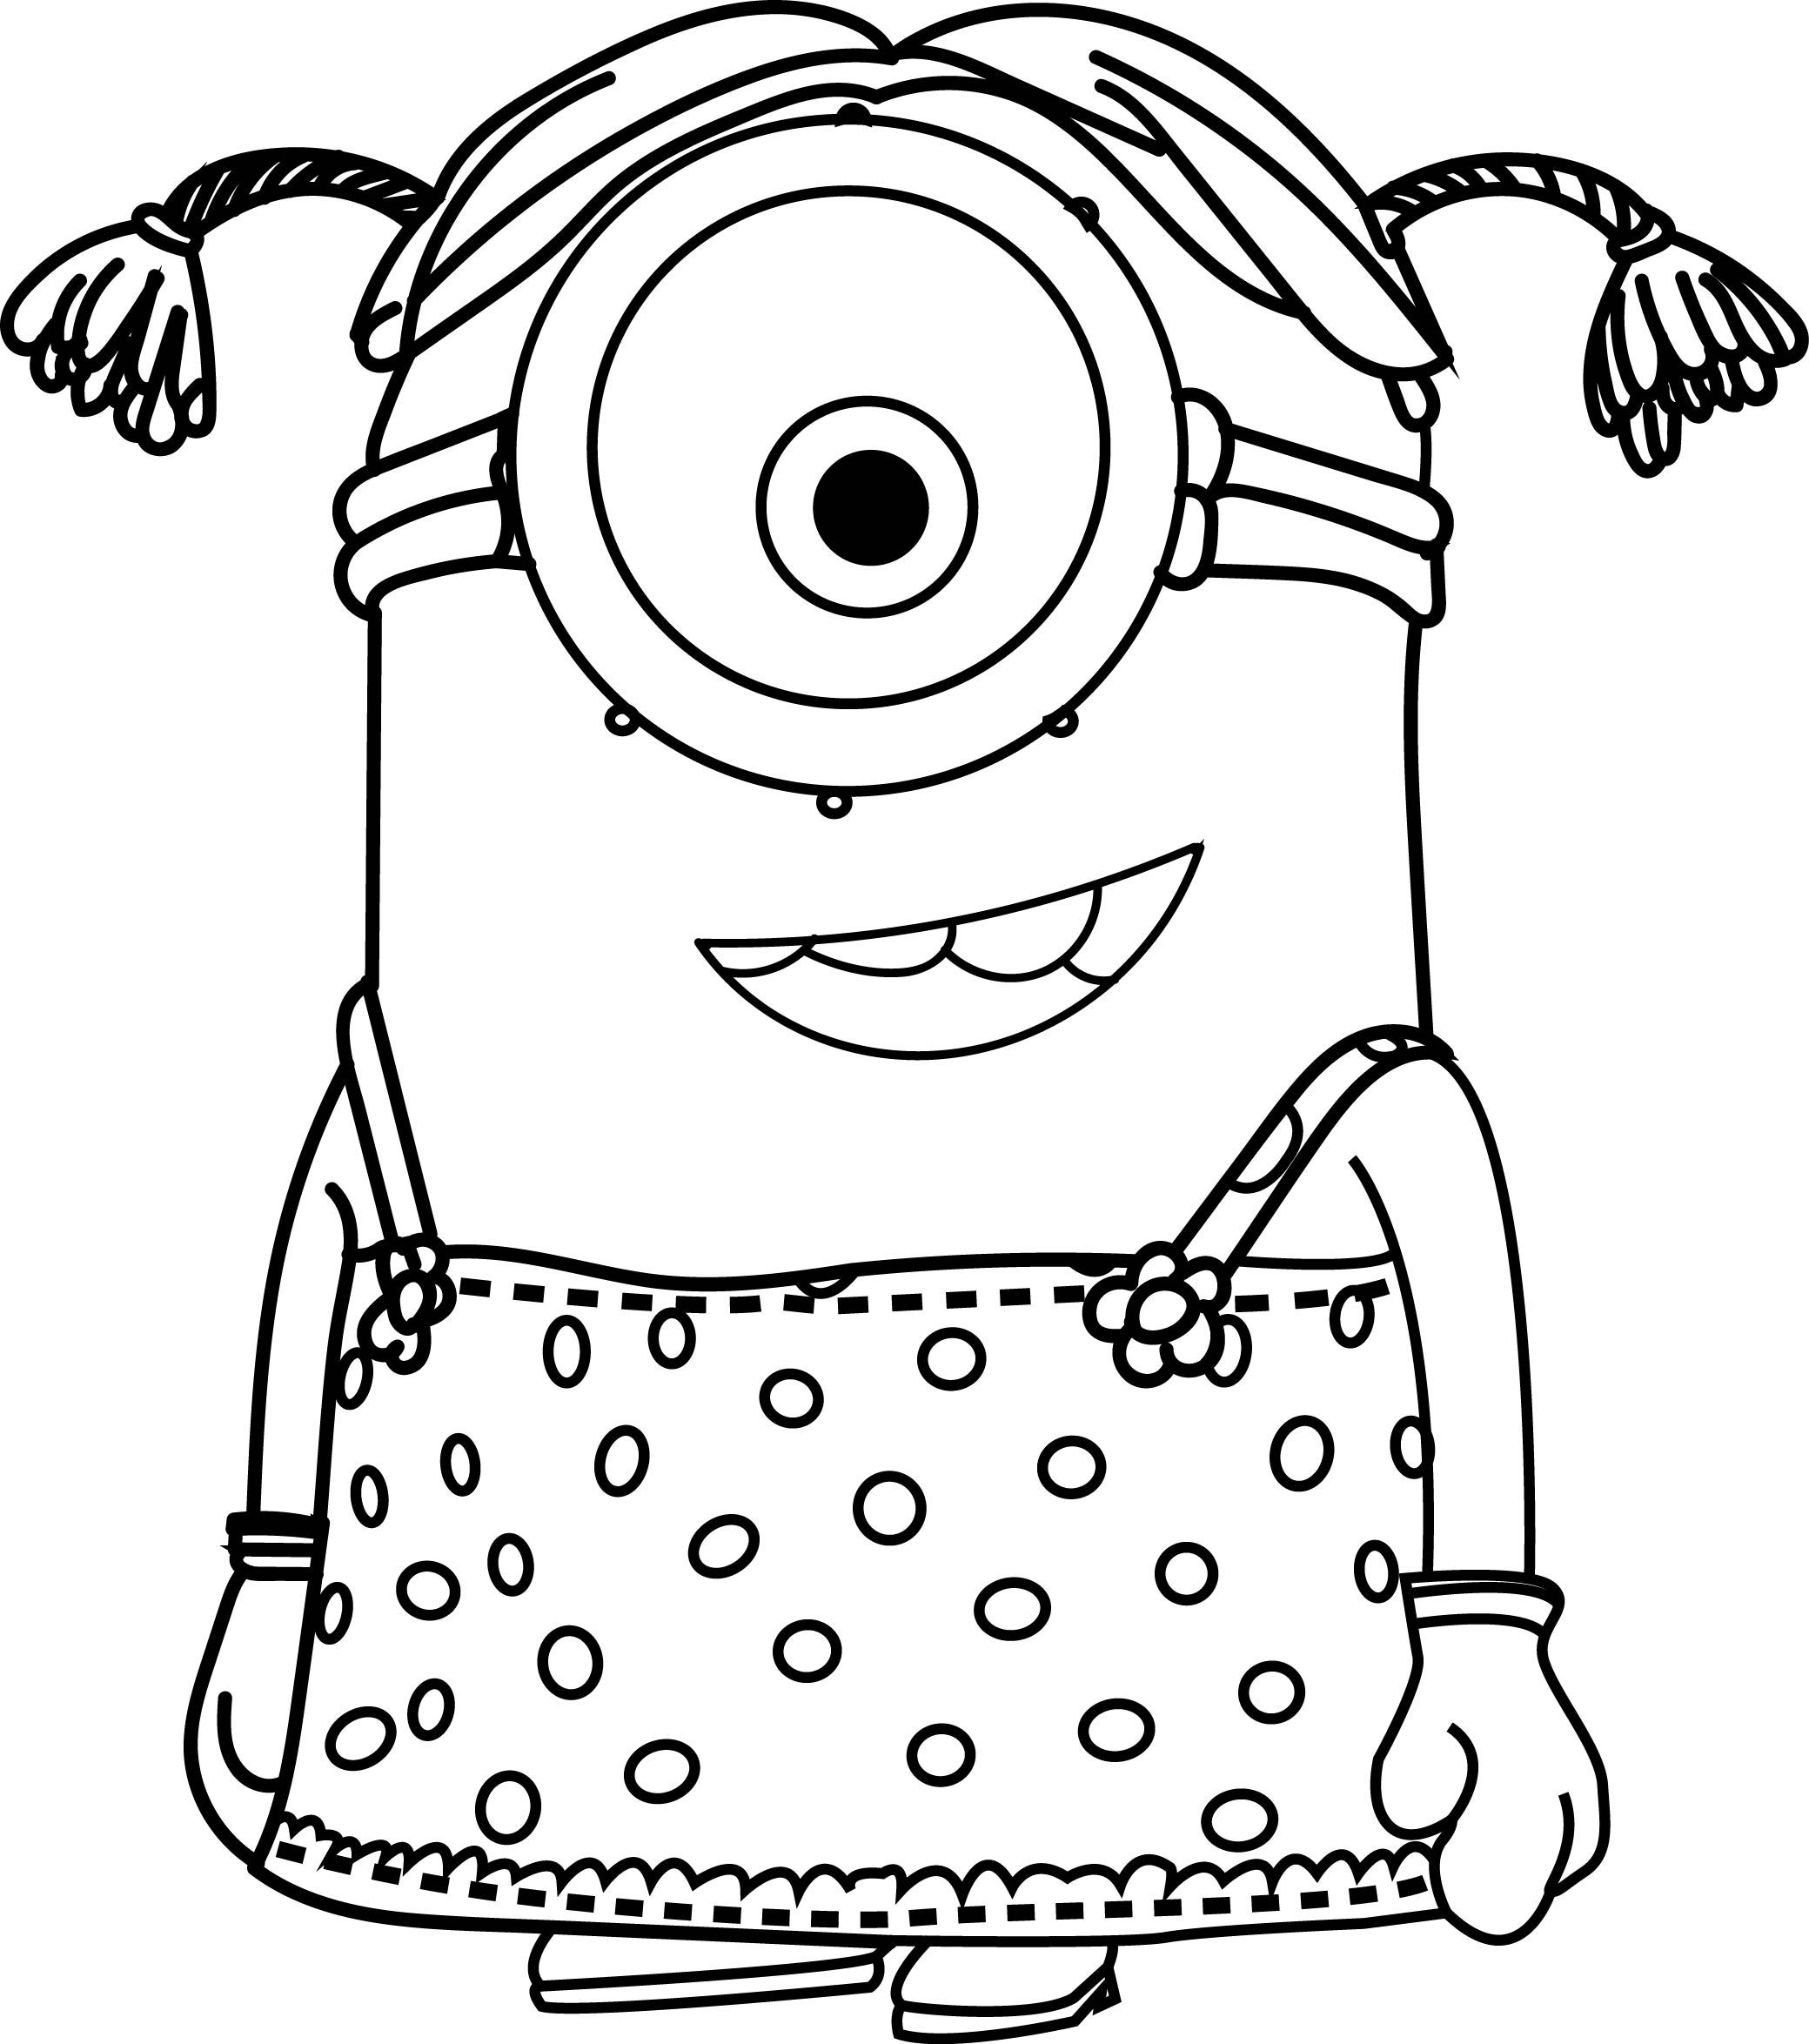 Cartoons Minions Little Girl Coloring Page Cartoons Minions Little